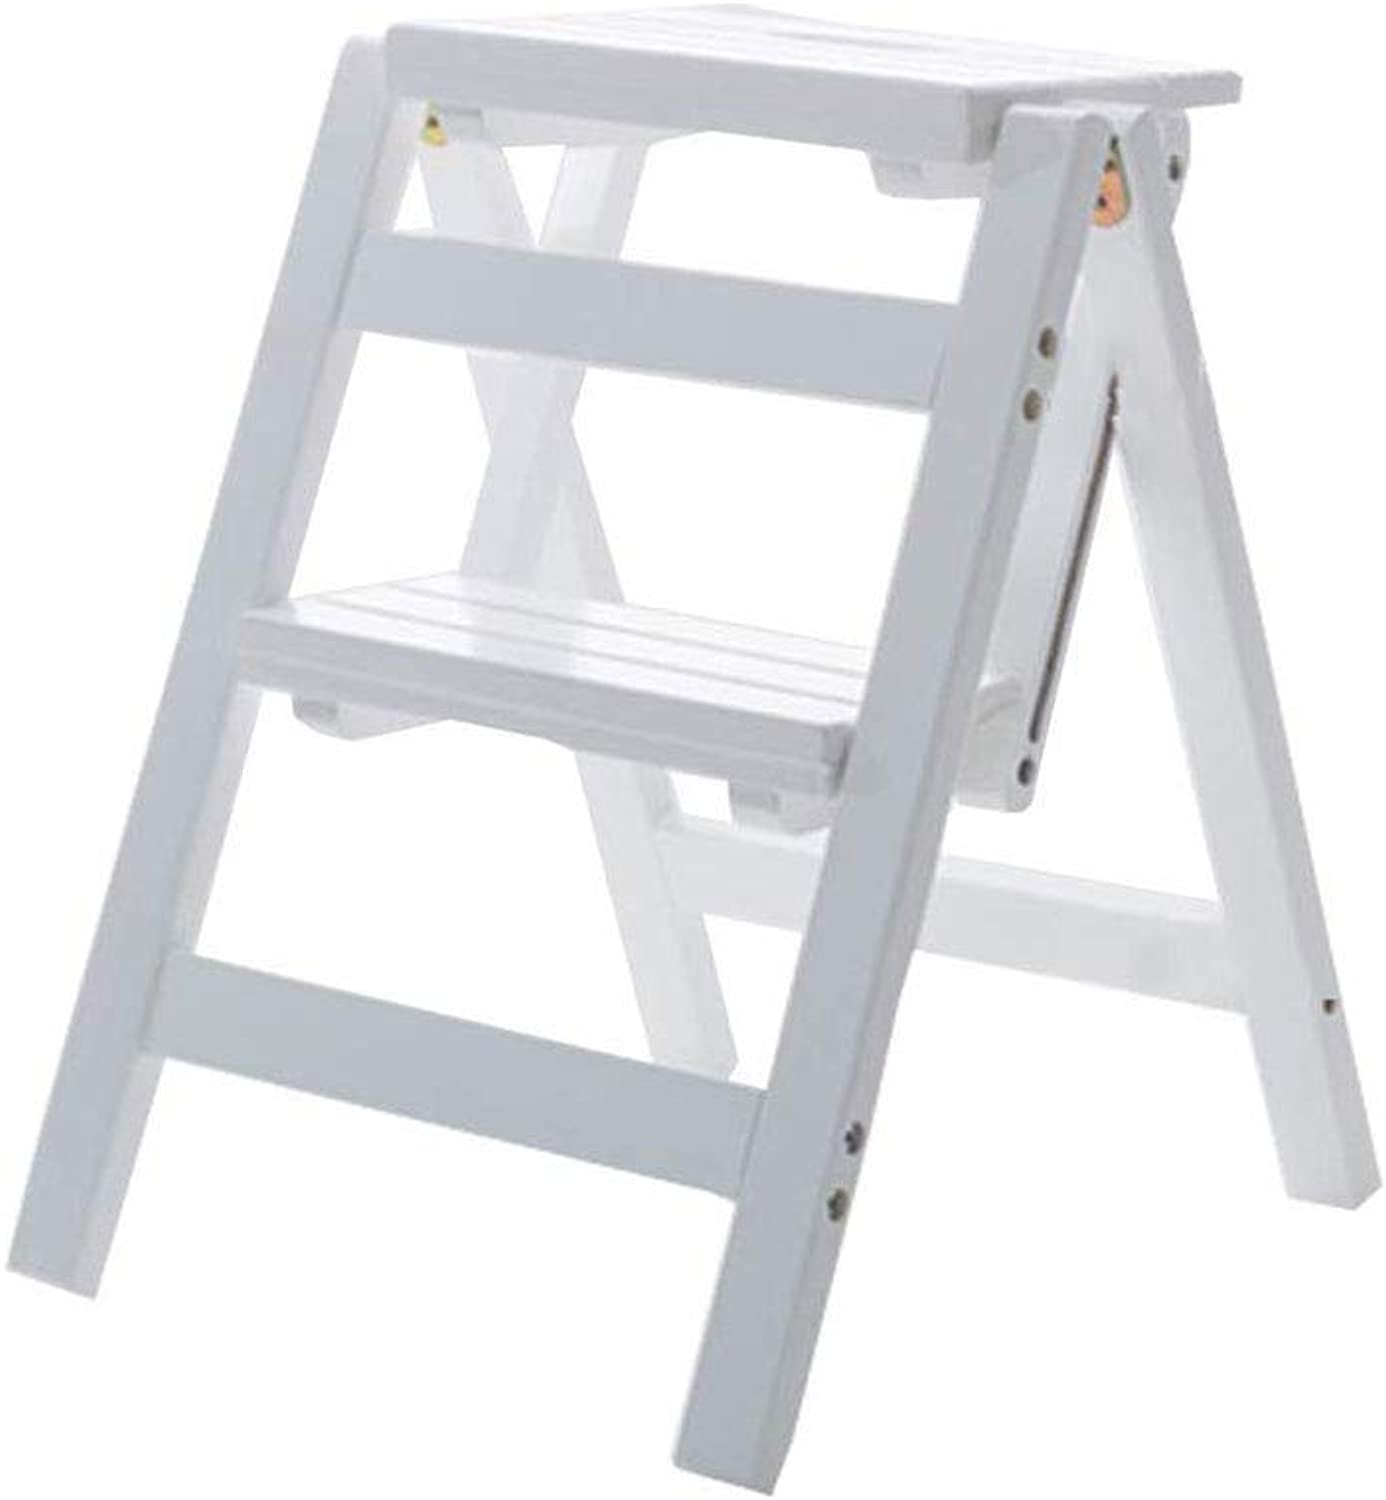 2 Step Folding Stepladder Stairway Chair Wooden Multifunction Foldable Ladder Stool Home Library Climb Ladder,White